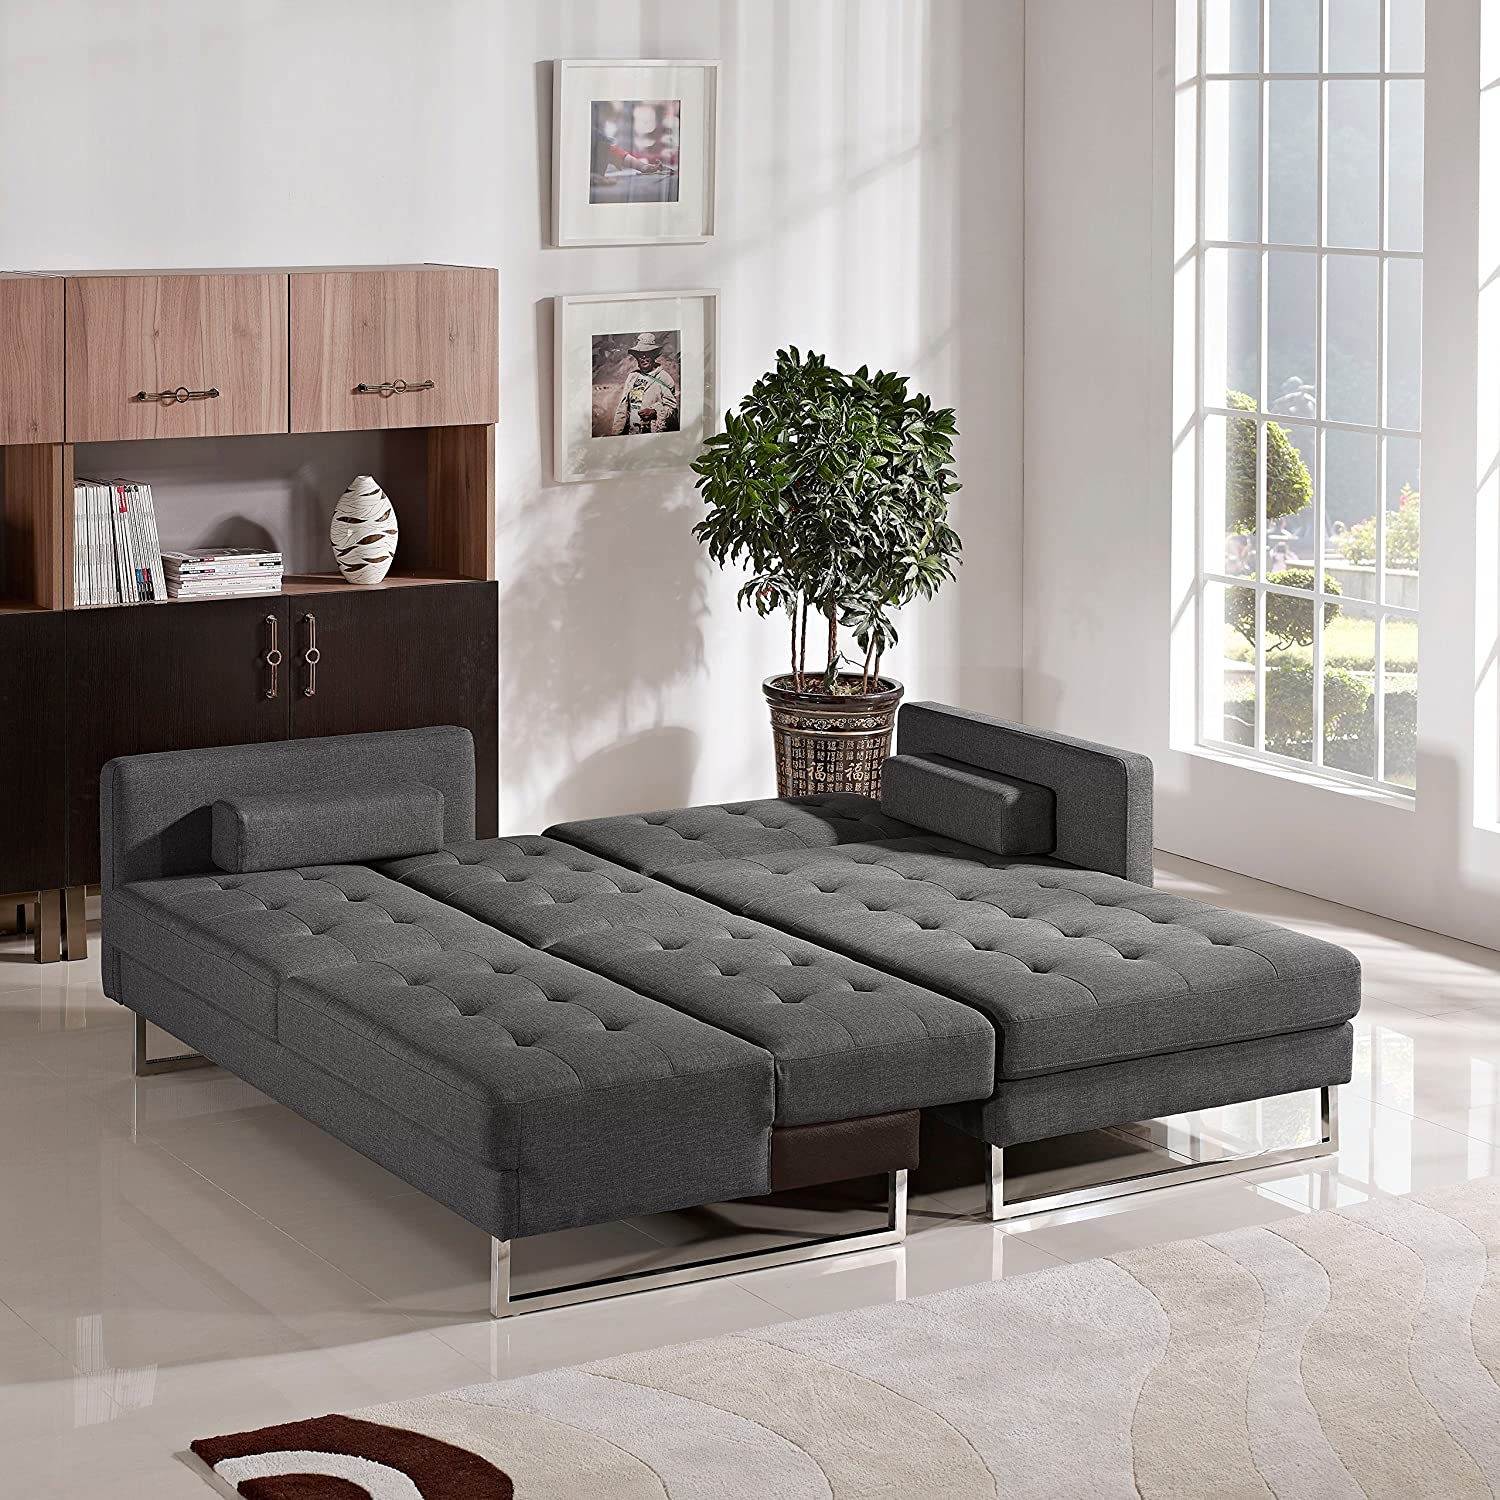 Amazon Opus Convertible Tufted RF Chaise Sectional by Diamond